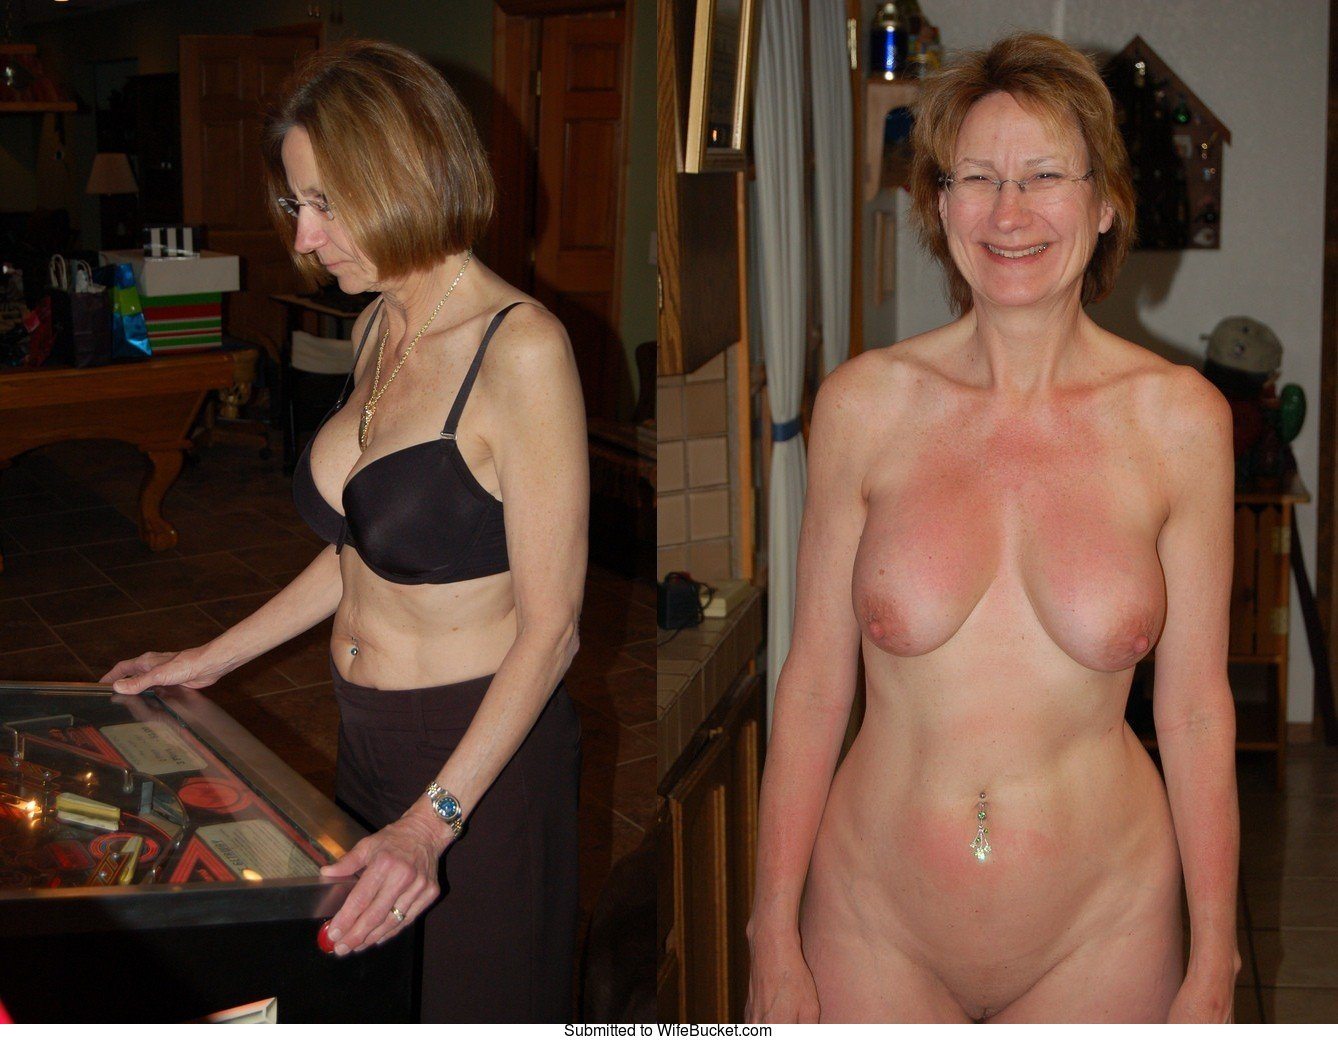 Image URL: https://cdn.wifebucket.com/wifebucket/tour/before-after-sex-pics/gallery-f-516-amateur-wives-clothed-unclothed/1.jpg  Click to view this fusker